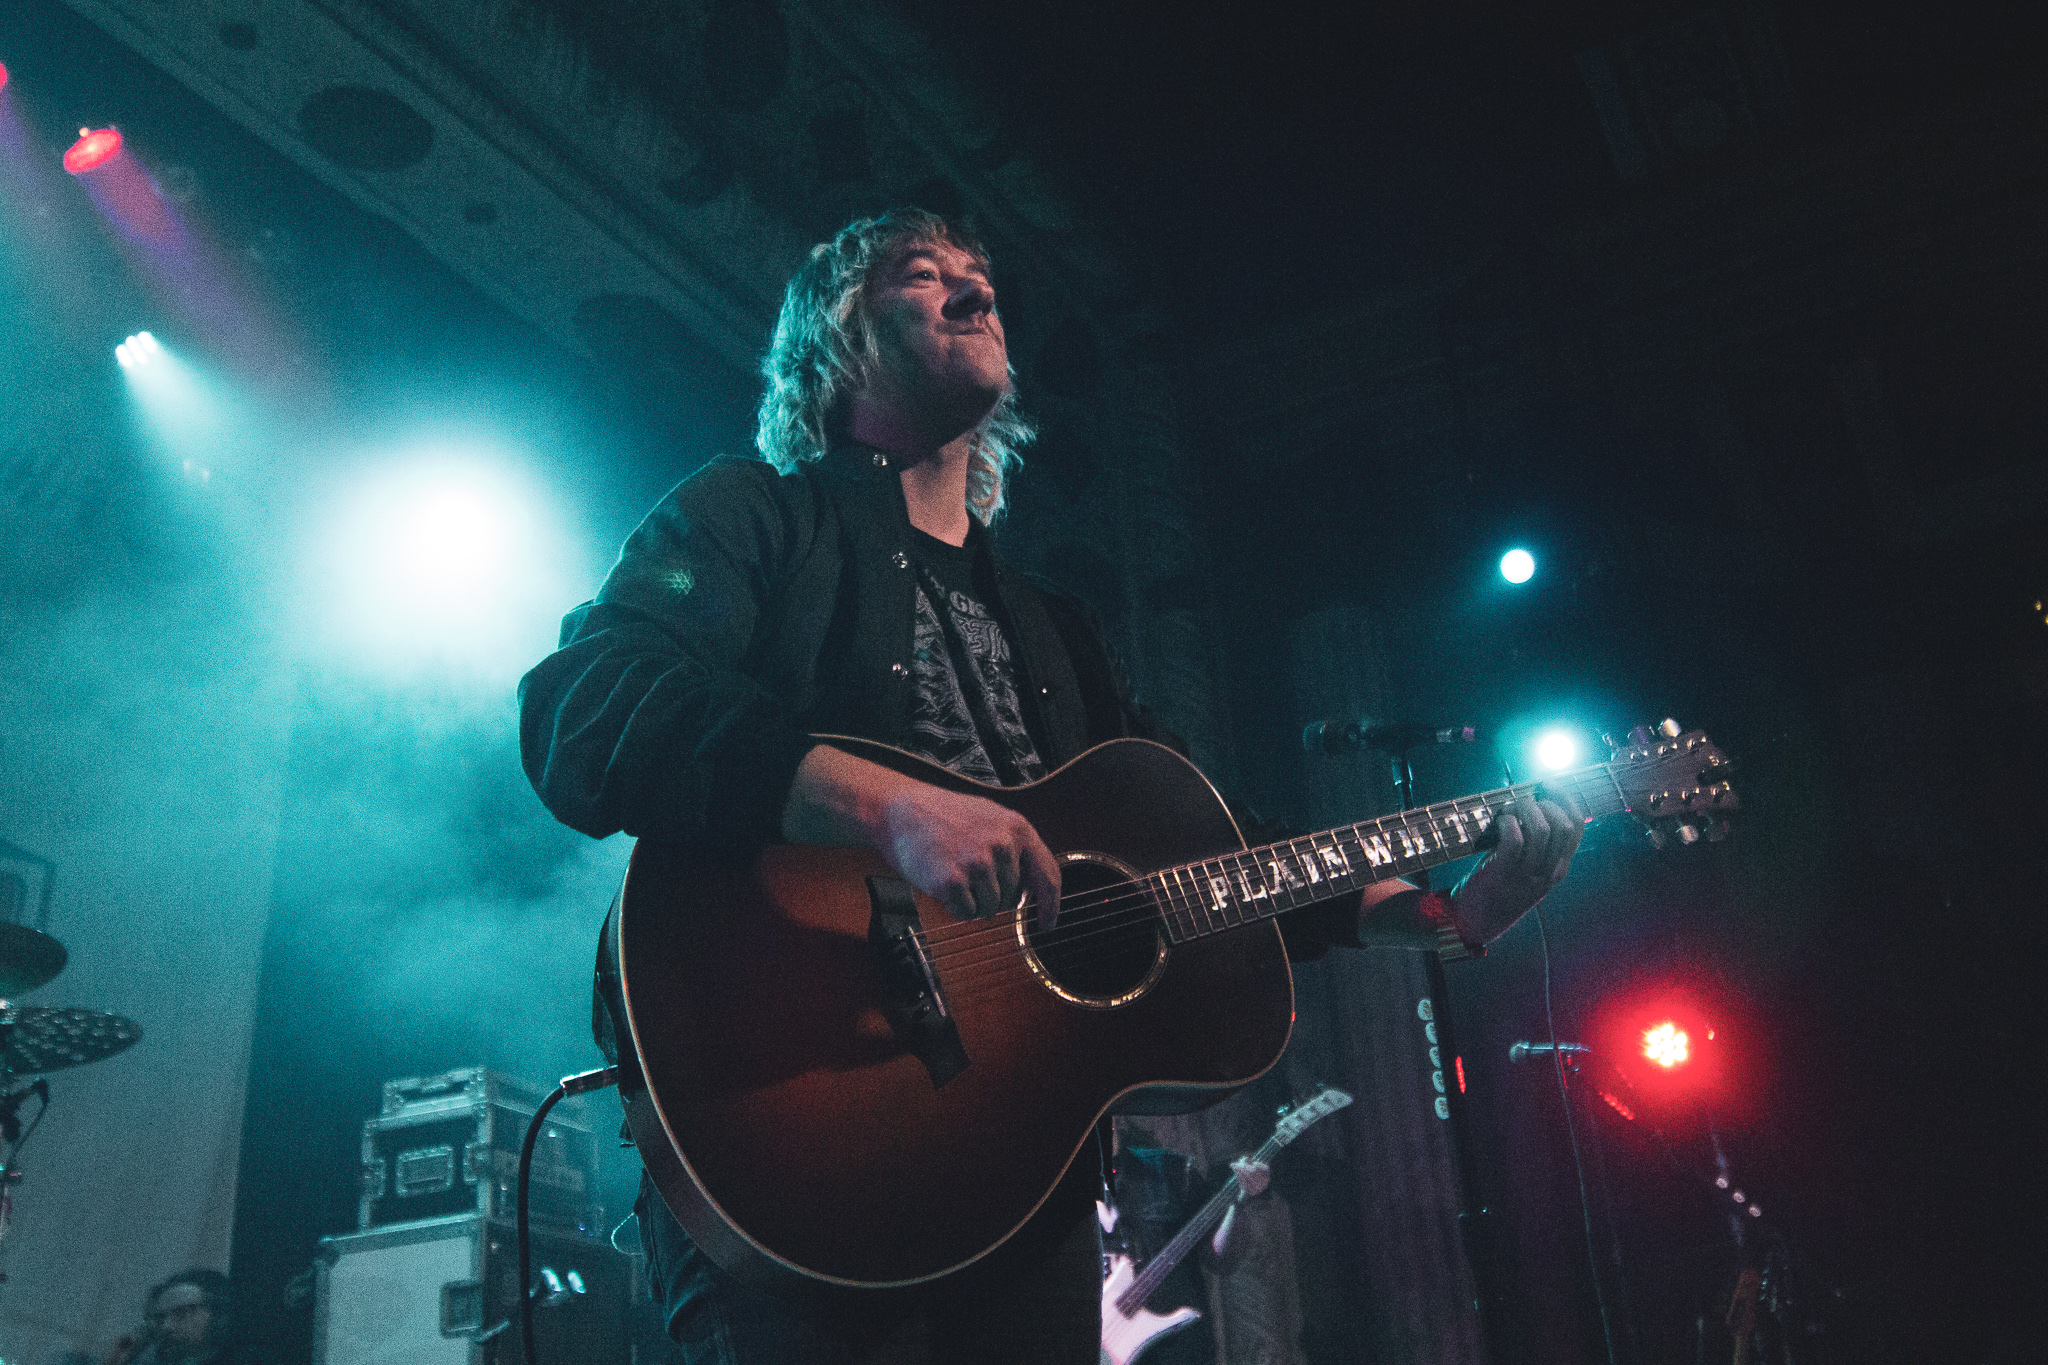 Tom Higgenson of The Plain White T's at The Metro in Chicago, IL on 11/12/2019 Photo; Abby Hamann